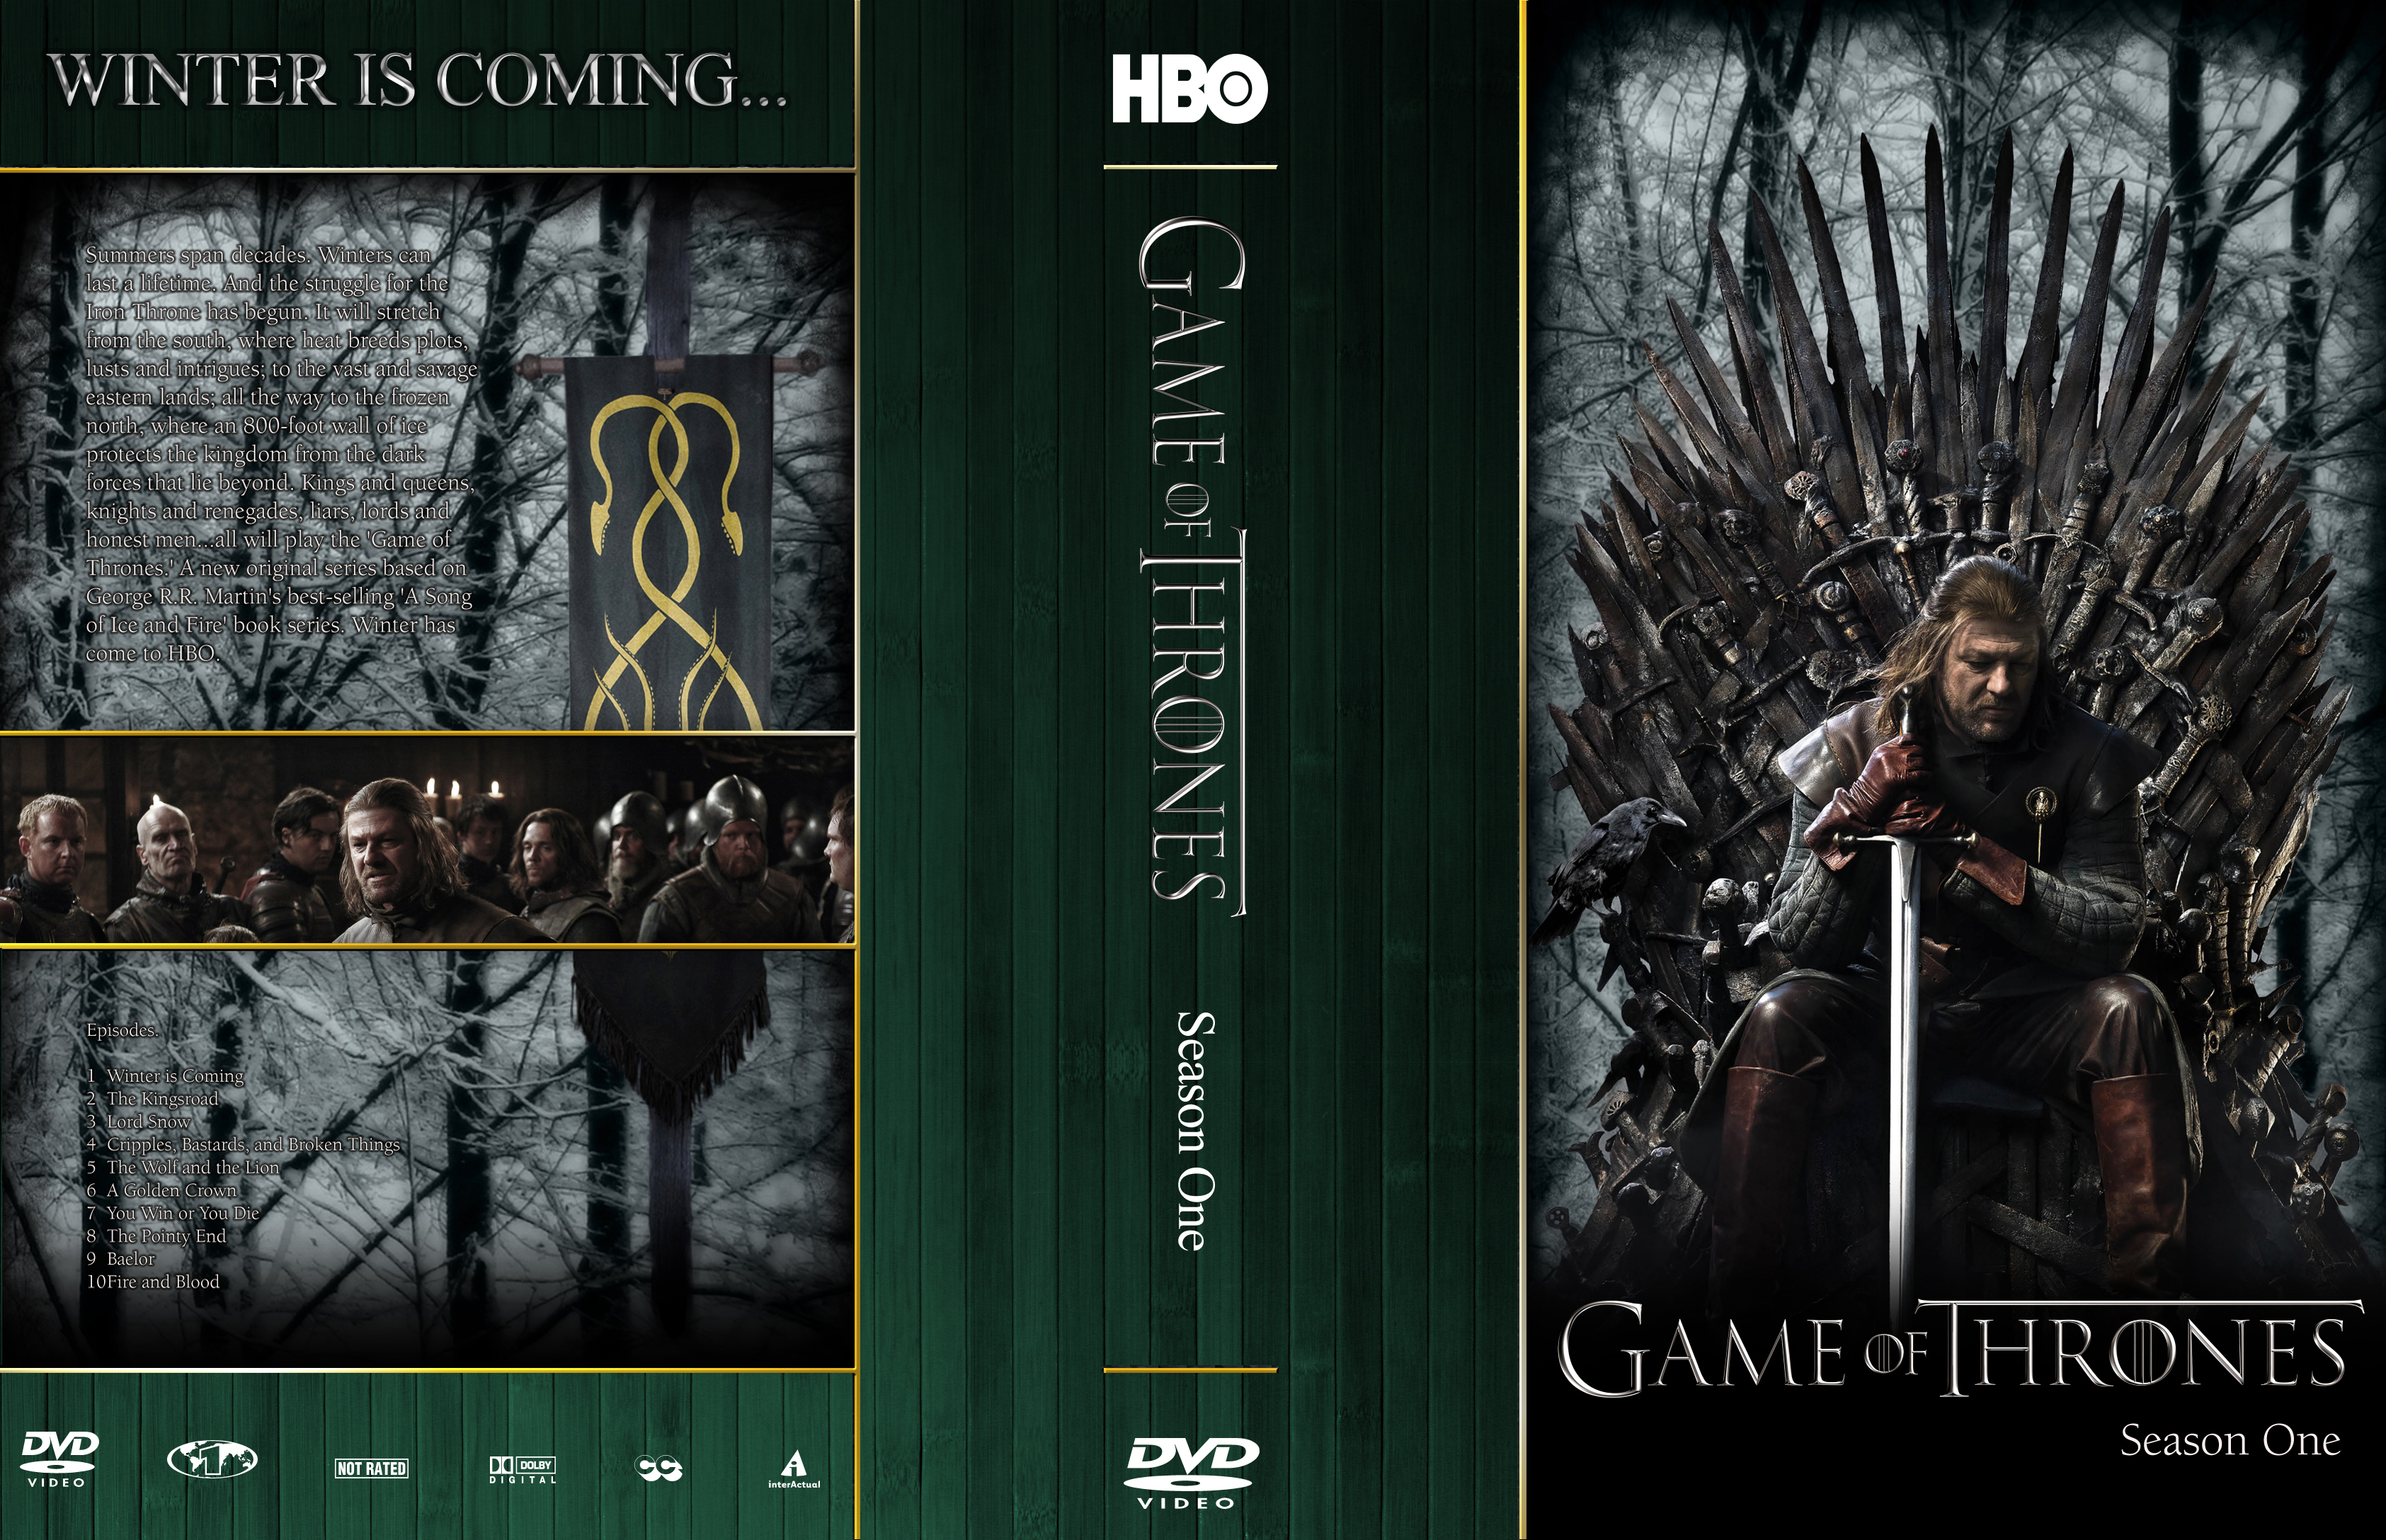 Game Of Thrones Season 1 R1 Cover By Mastrada101 On DeviantArt